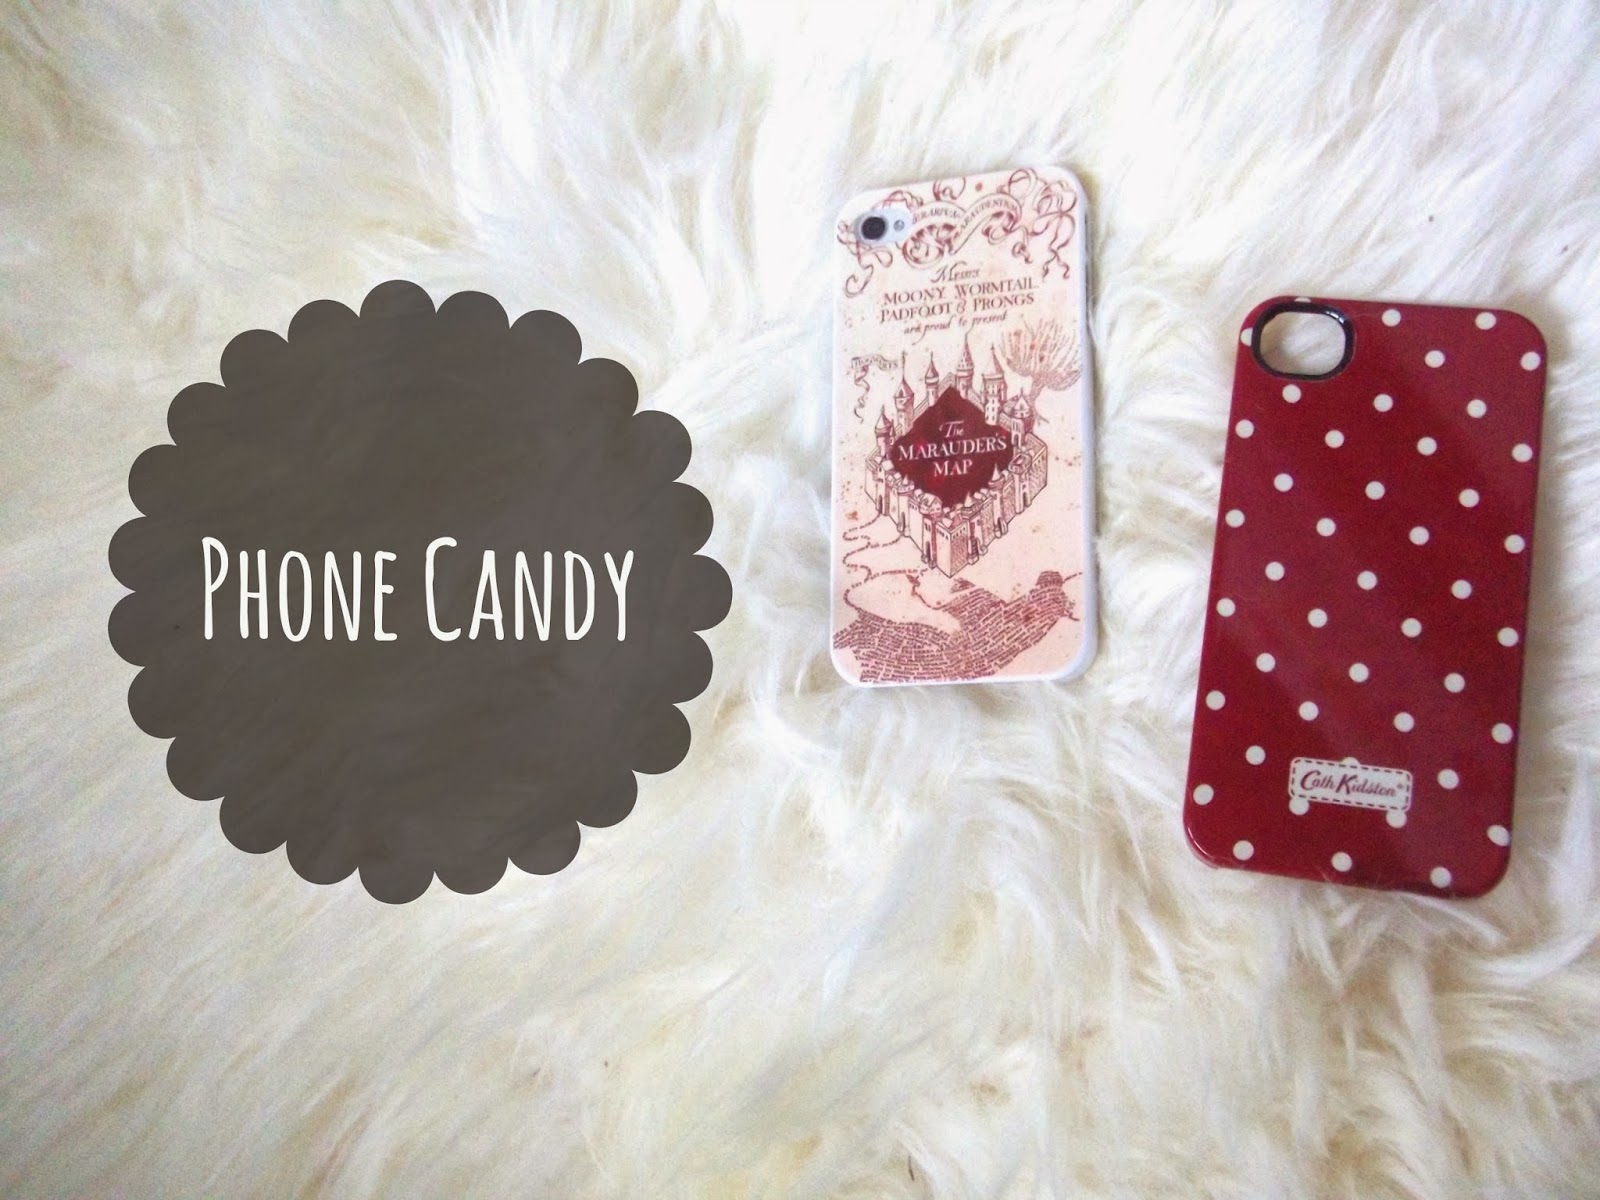 Phone Candy